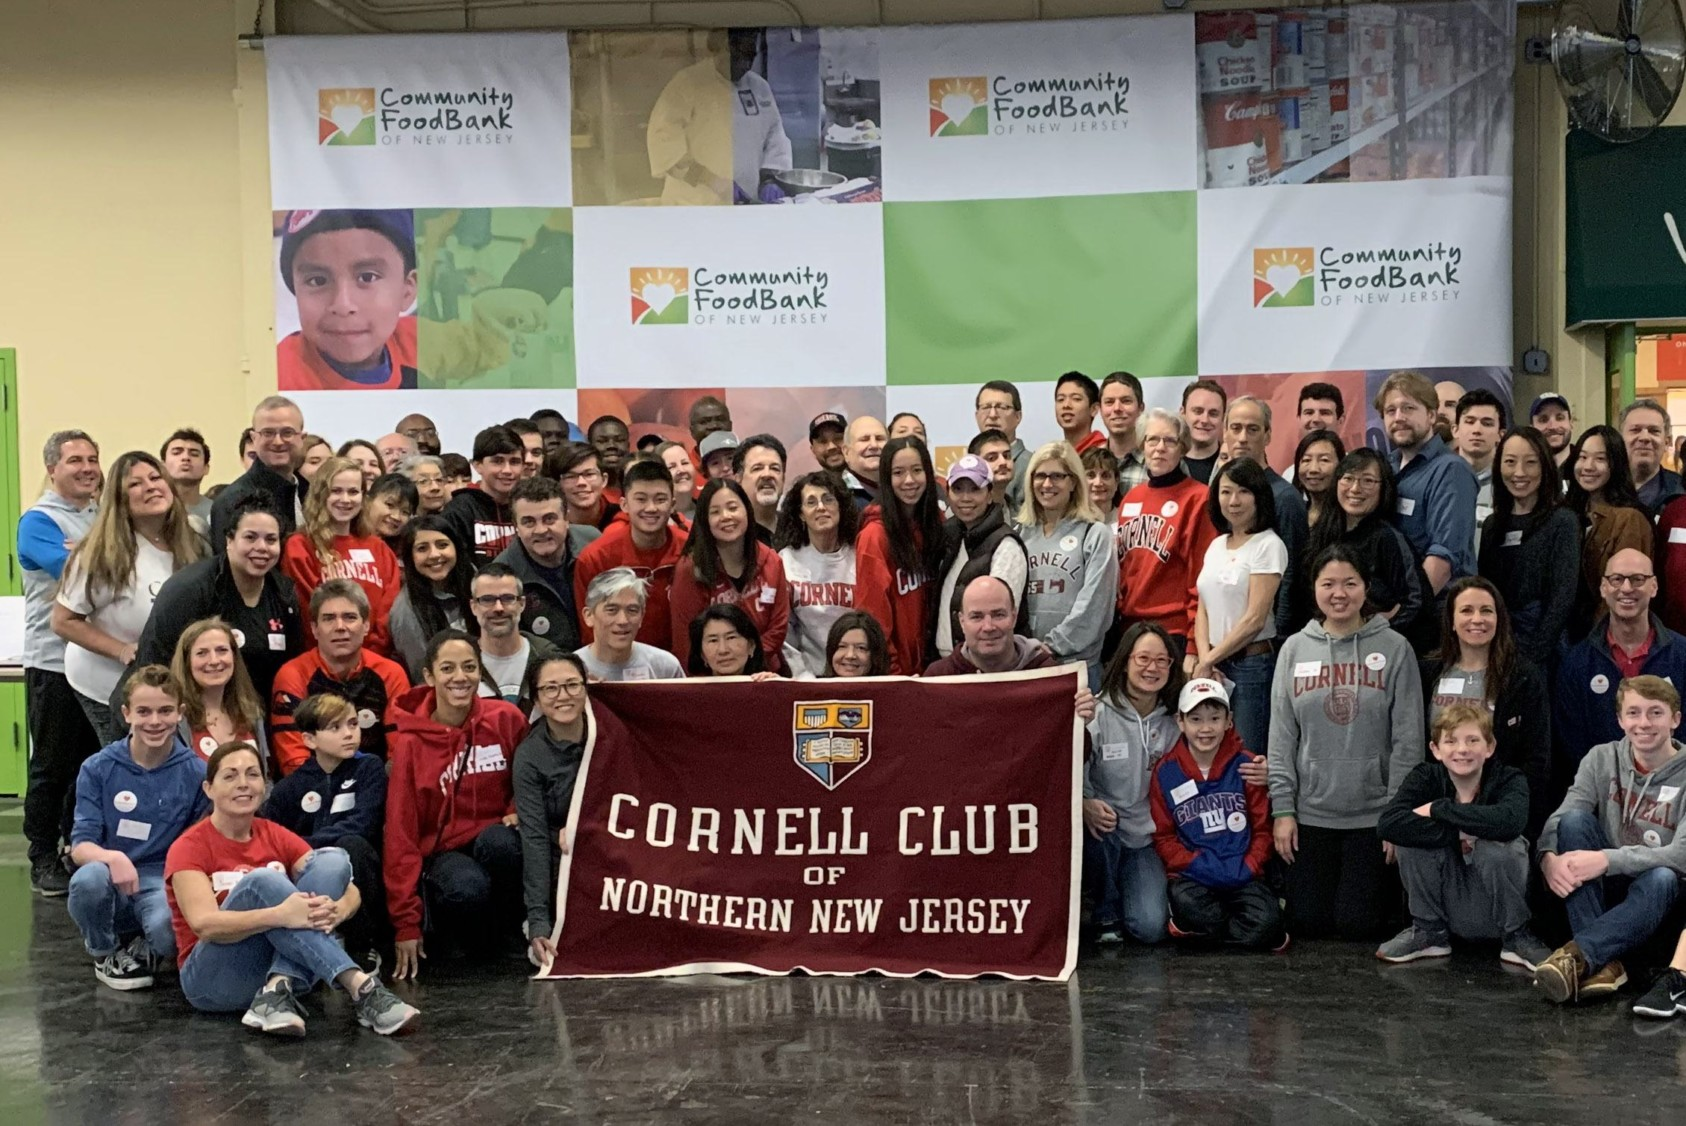 The afternoon shift of volunteers from the Cornell Club of Northern New Jersey at the Community Food Bank of New Jersey in Hillside.